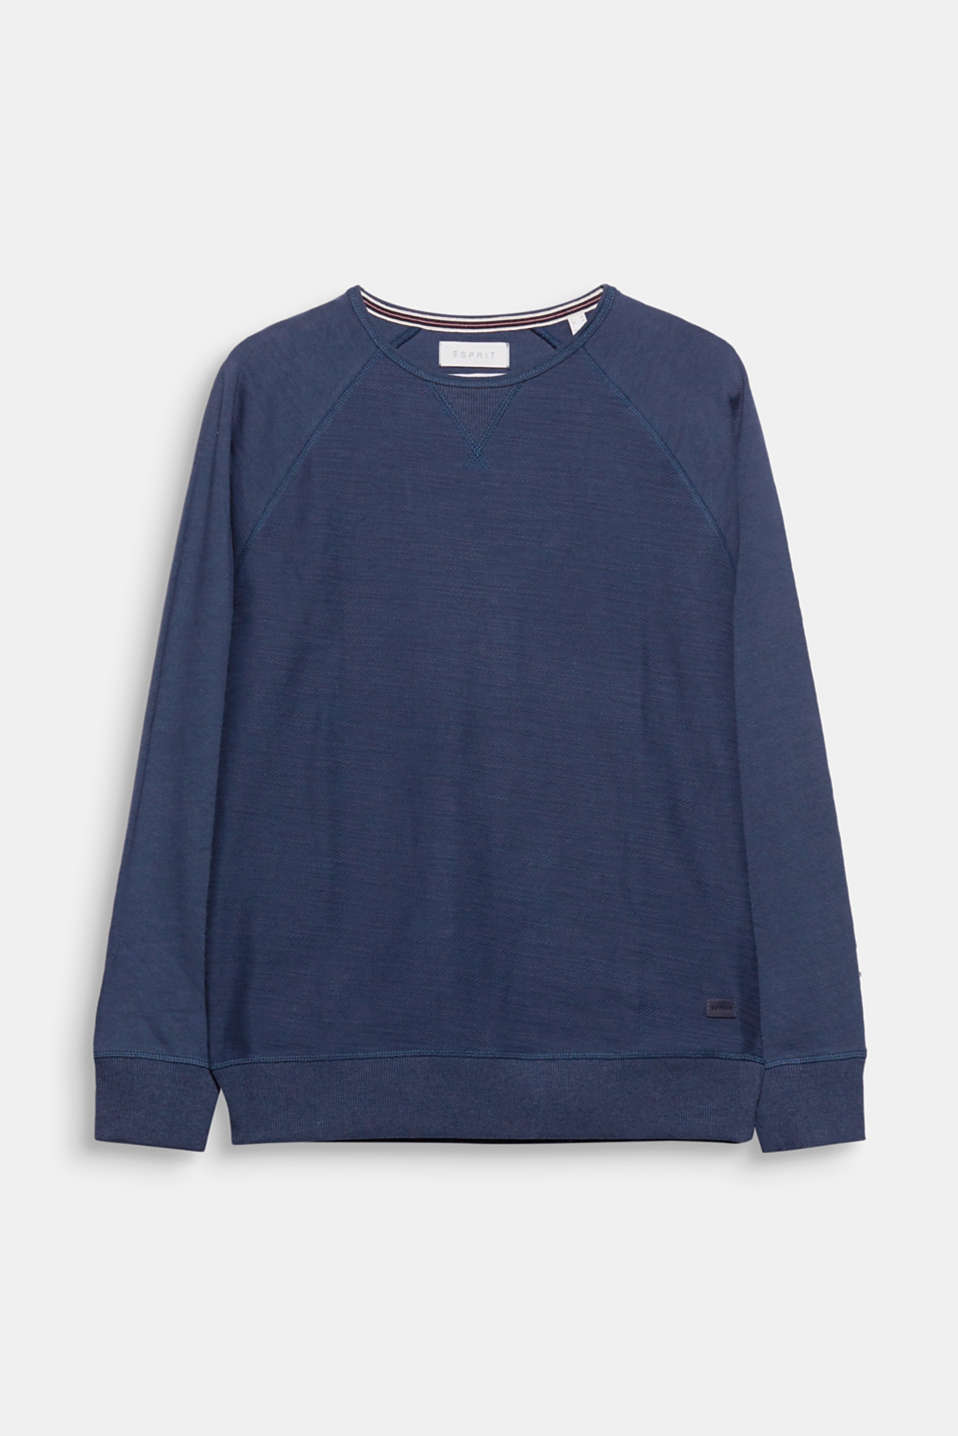 Trend - French terry fabric: sweatshirt look plus the lightness of a long sleeve tee equals mega cool!